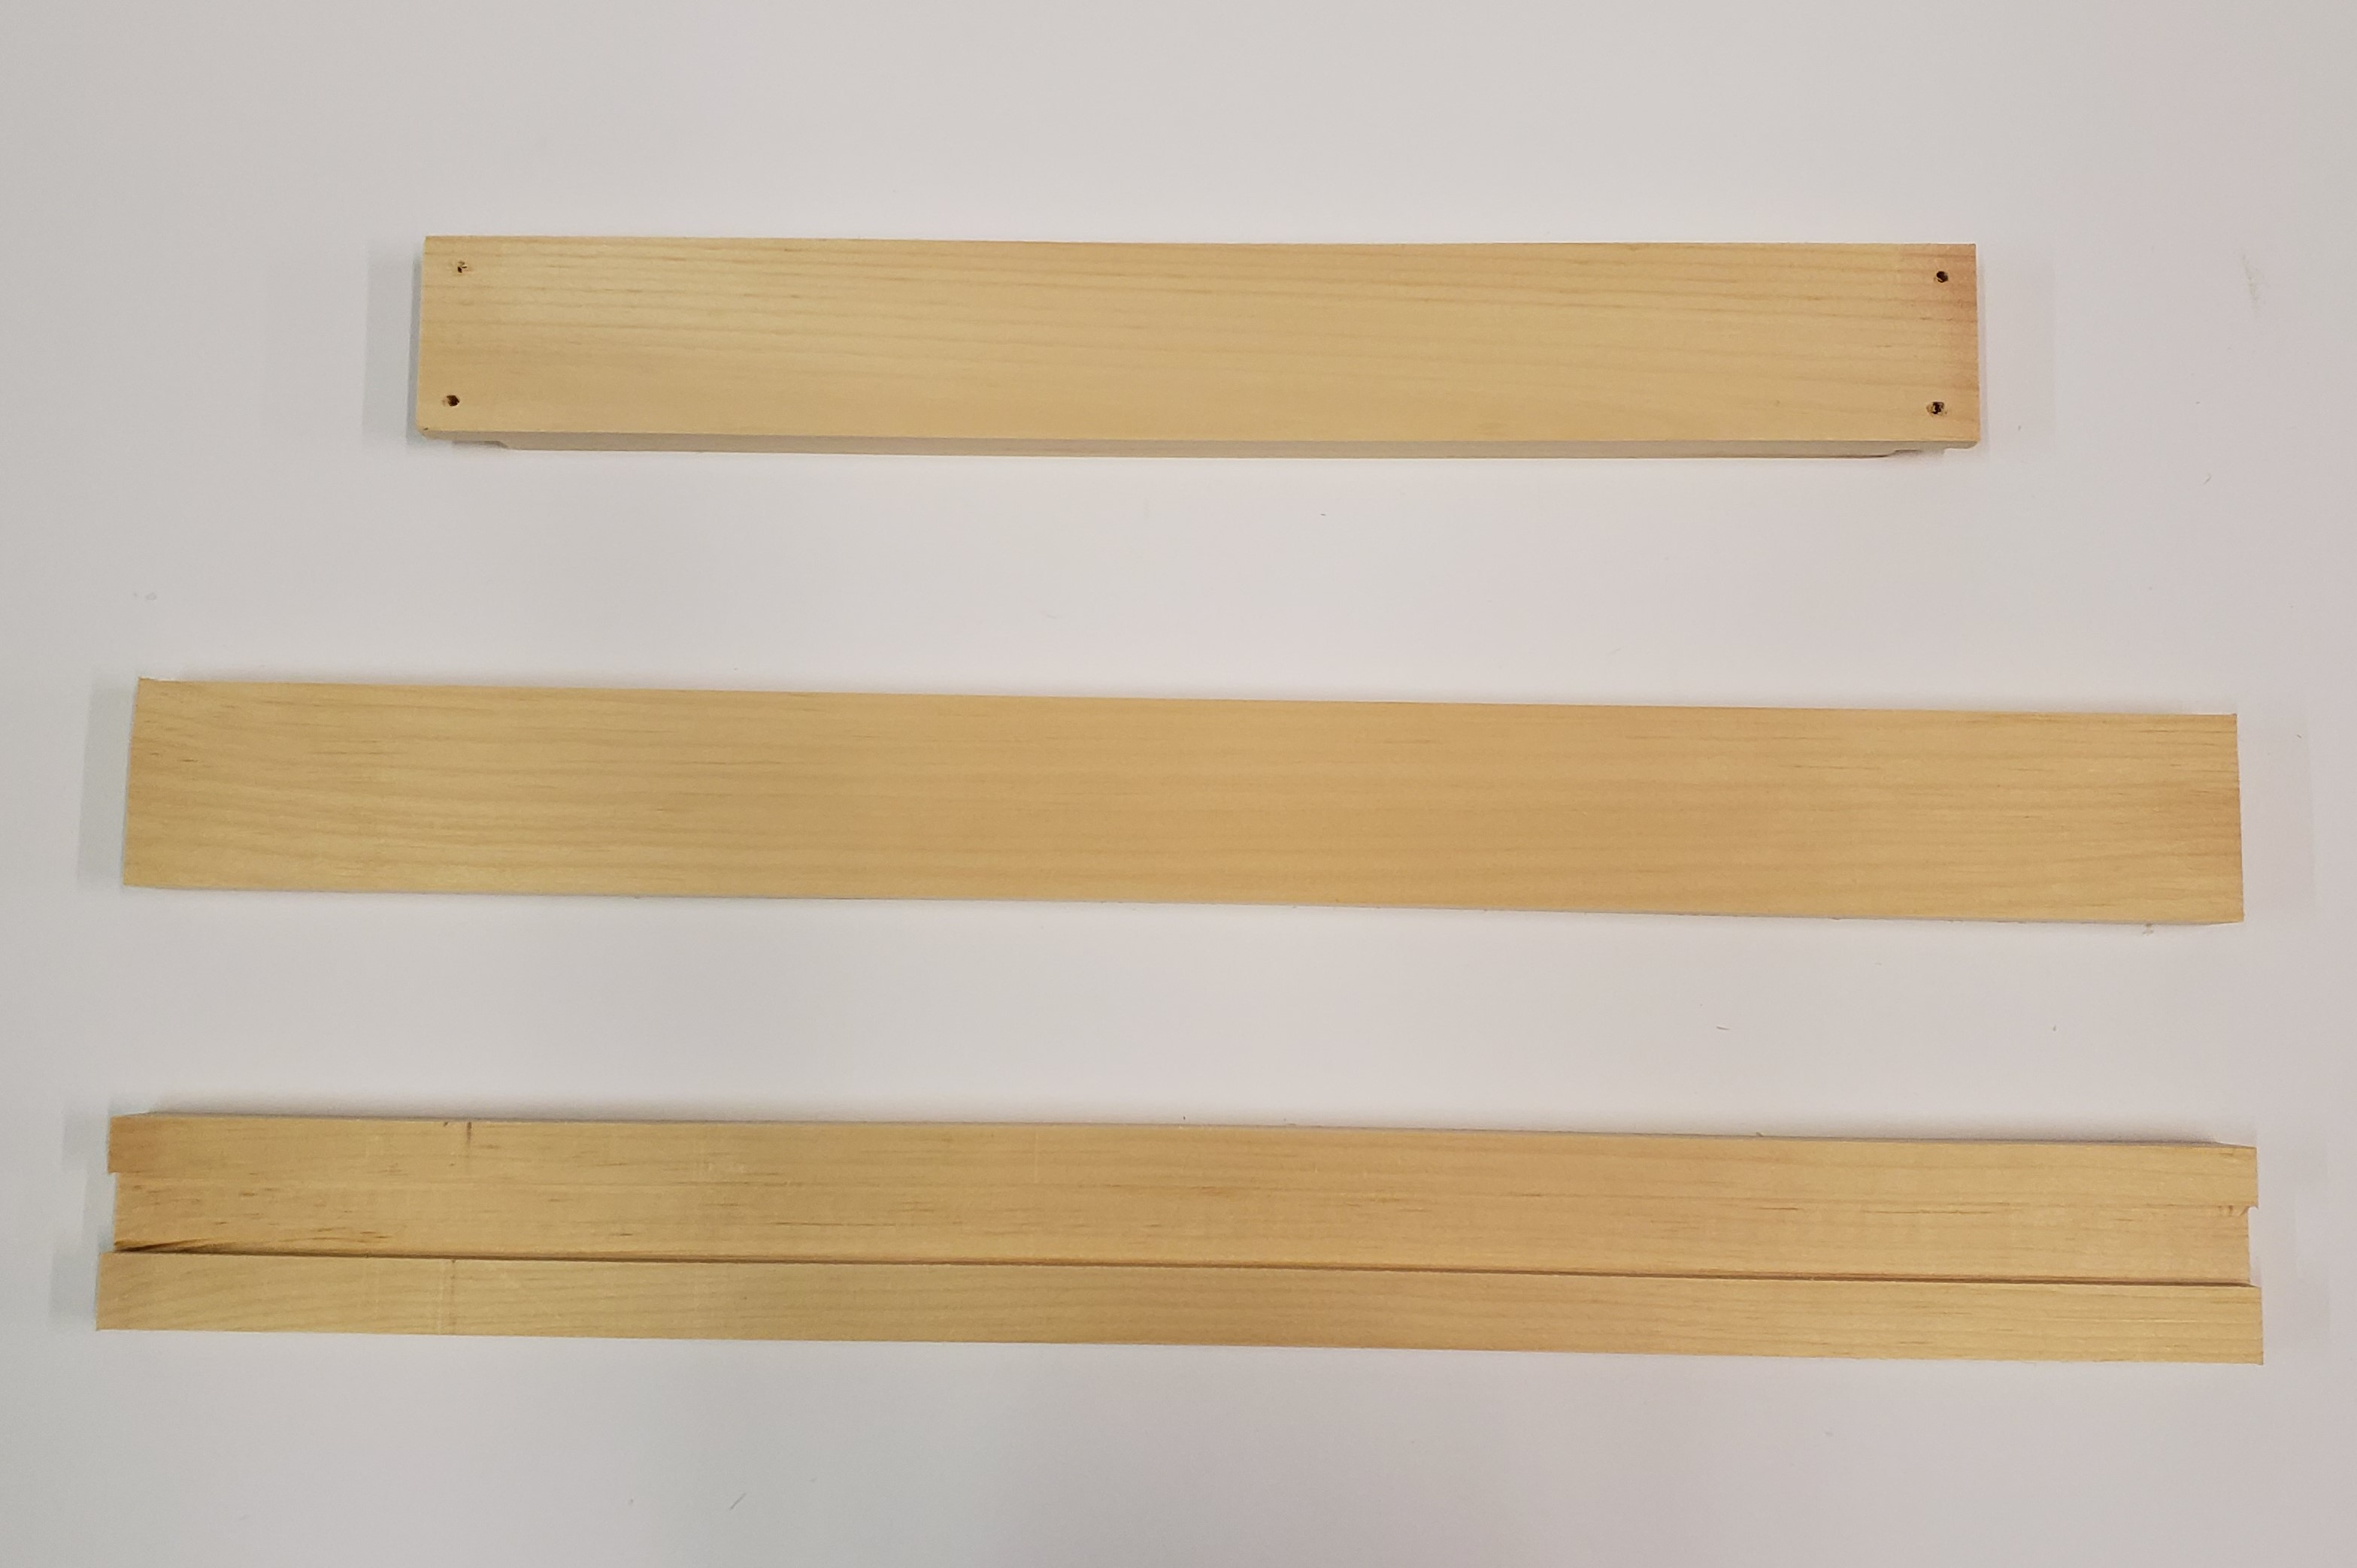 8 Frame Pine Bottom - Rails (3 Pc)